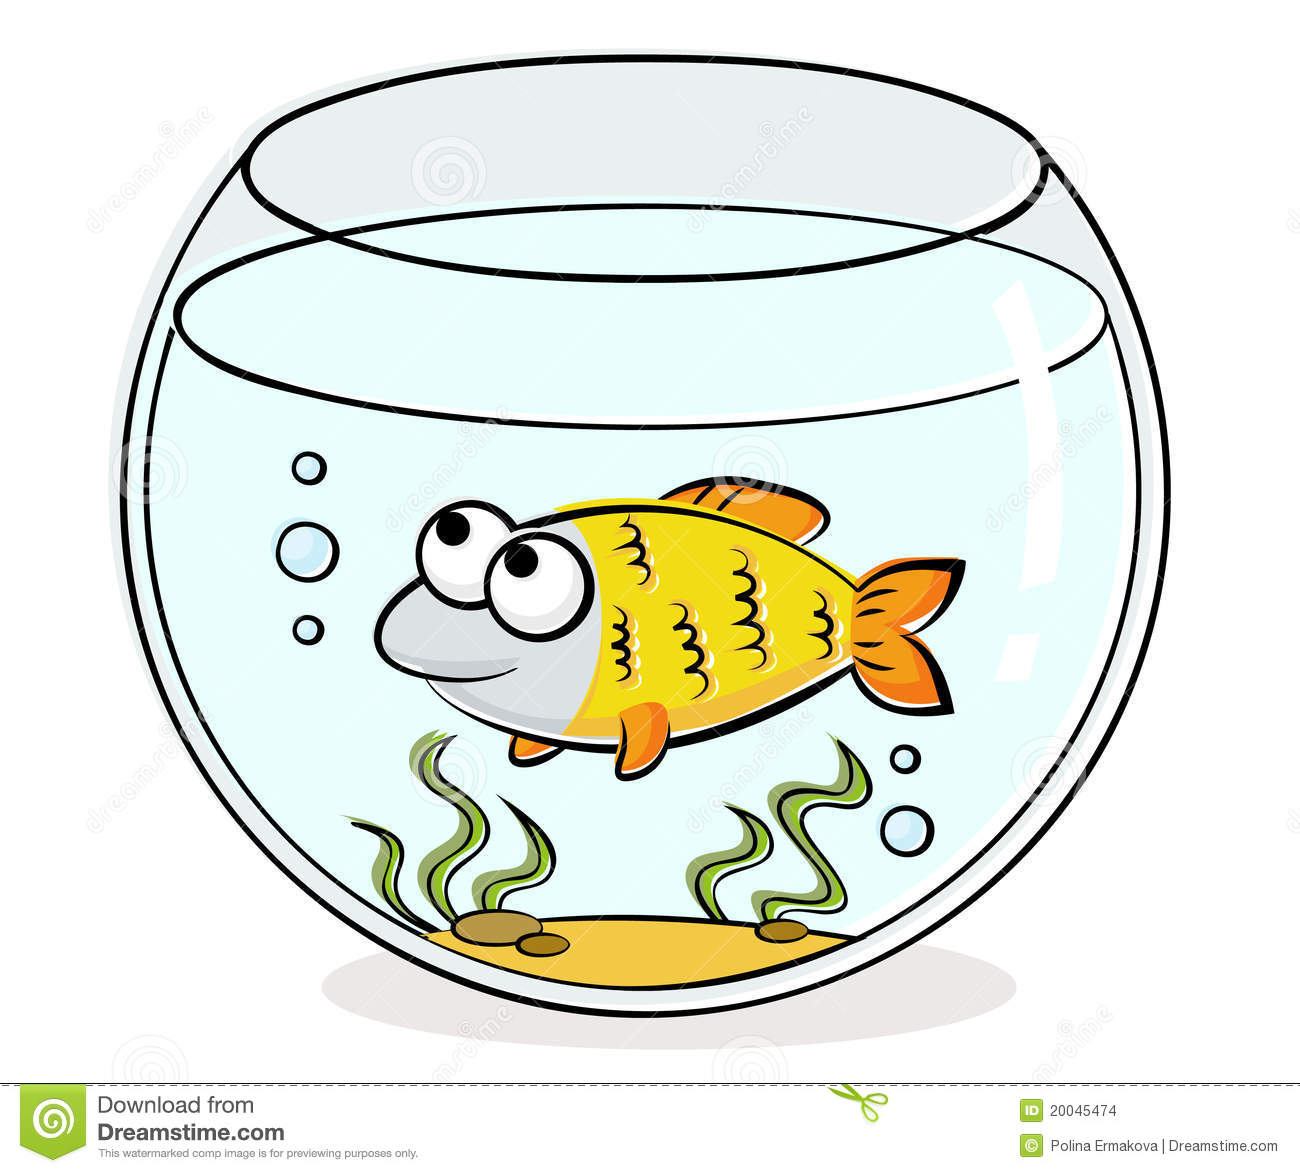 Aquarium clipart Aquarium%20clipart Clipart Panda Free Clipart